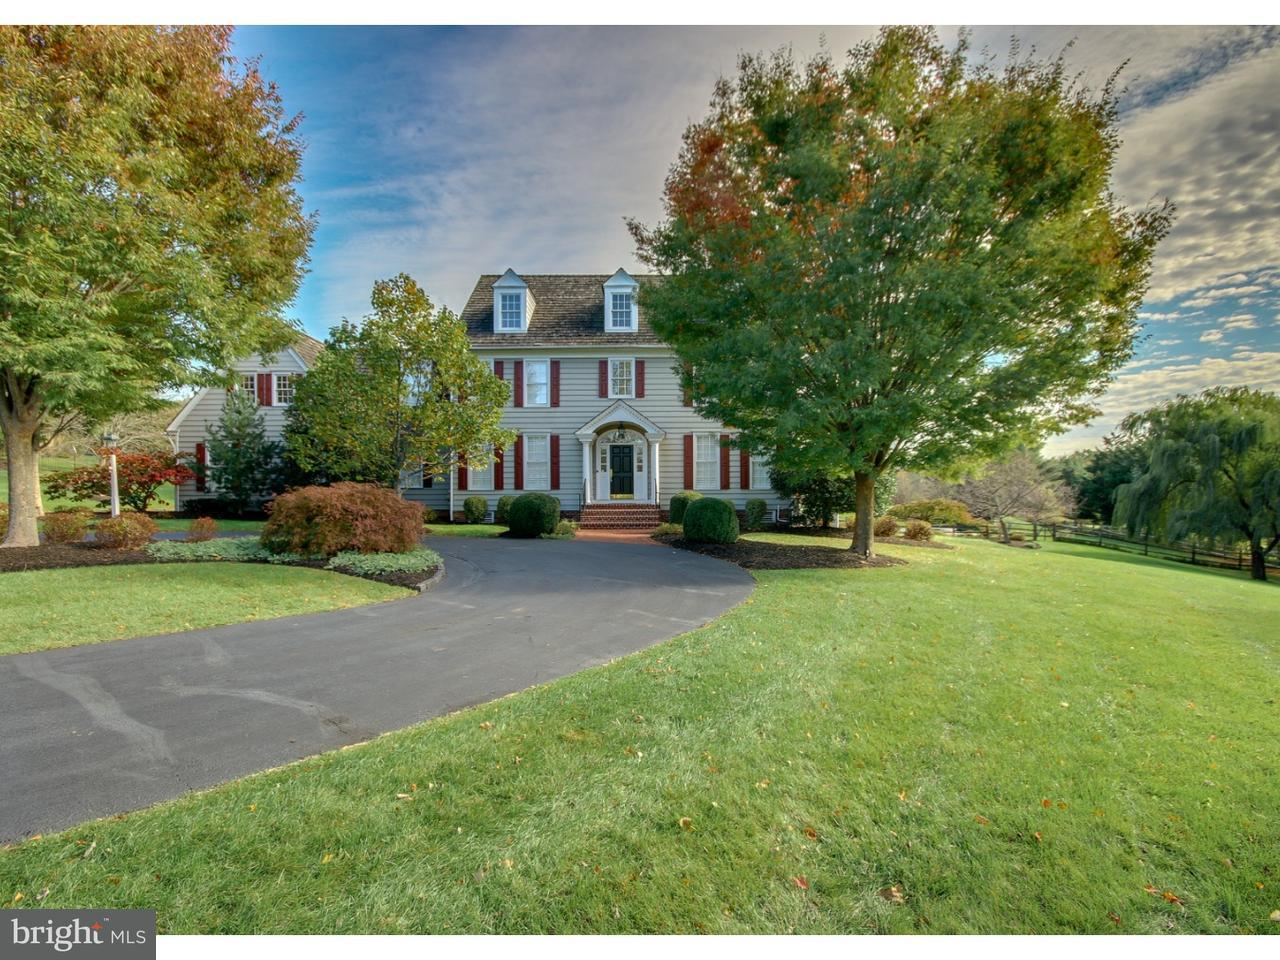 Single Family Home for Sale at 1092 CREAMERY Road Newtown, Pennsylvania 18940 United States